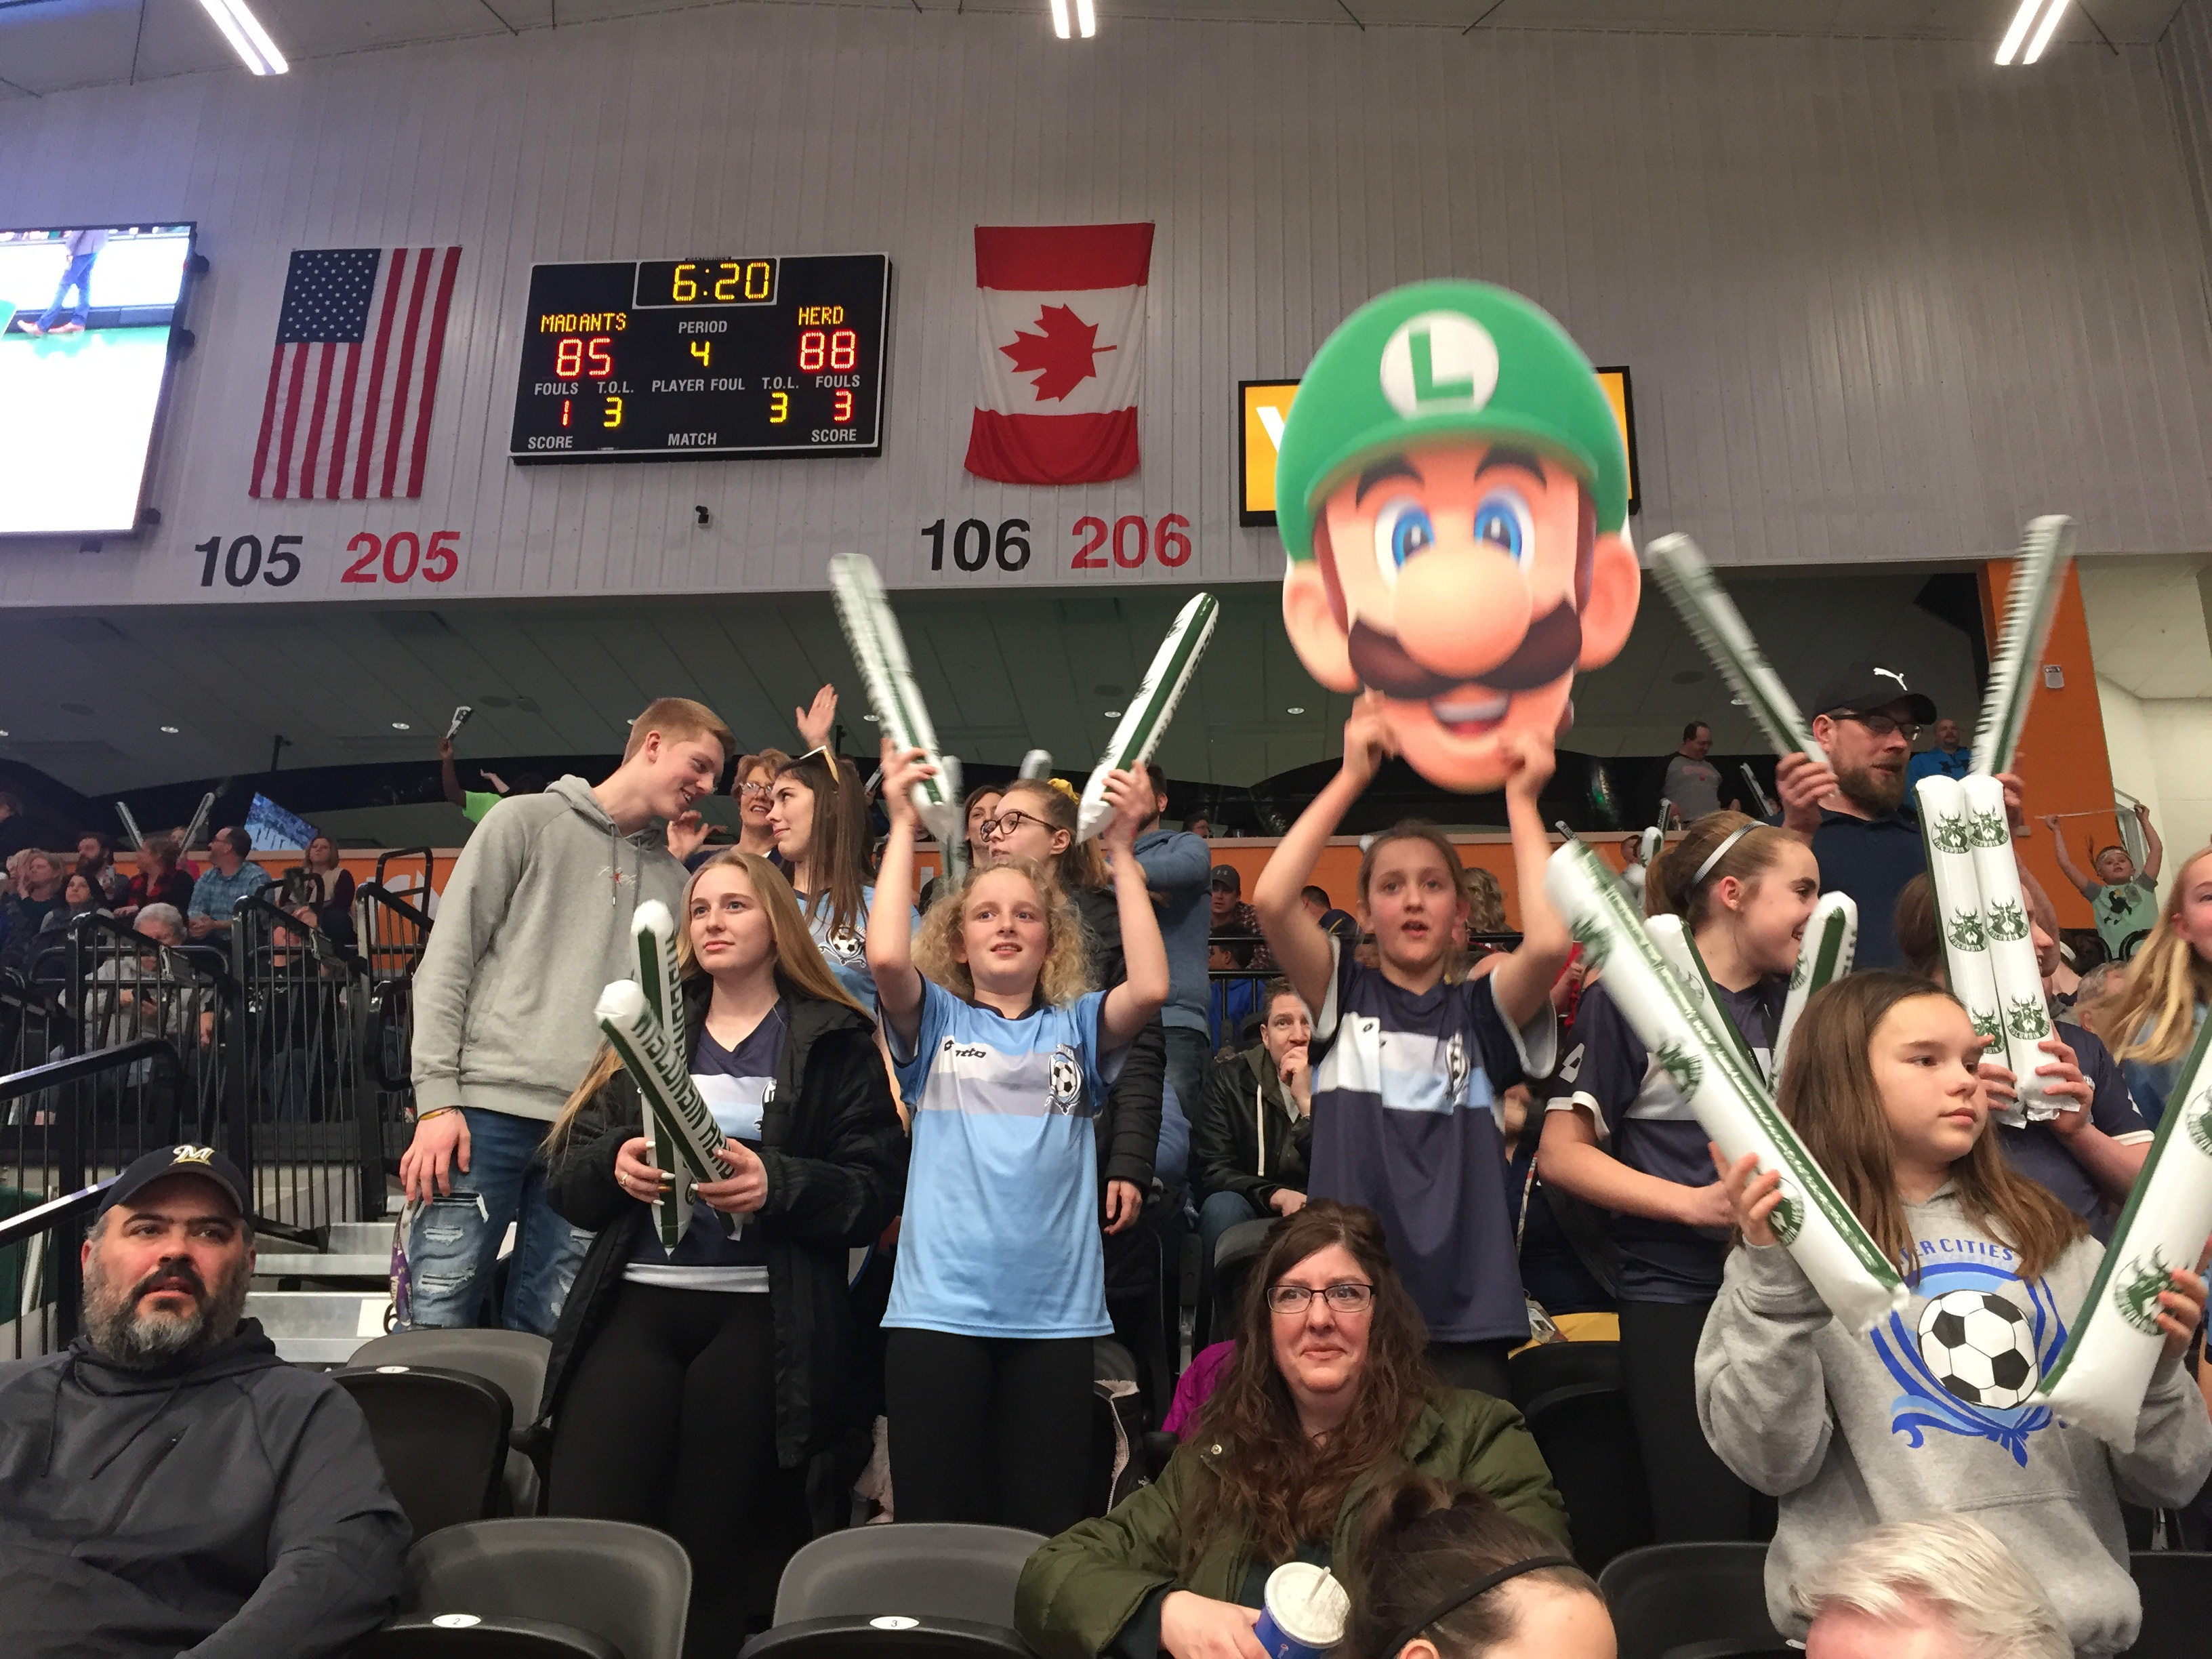 WATER CITIES SOCCER CLUB AT WISCONSIN HERD